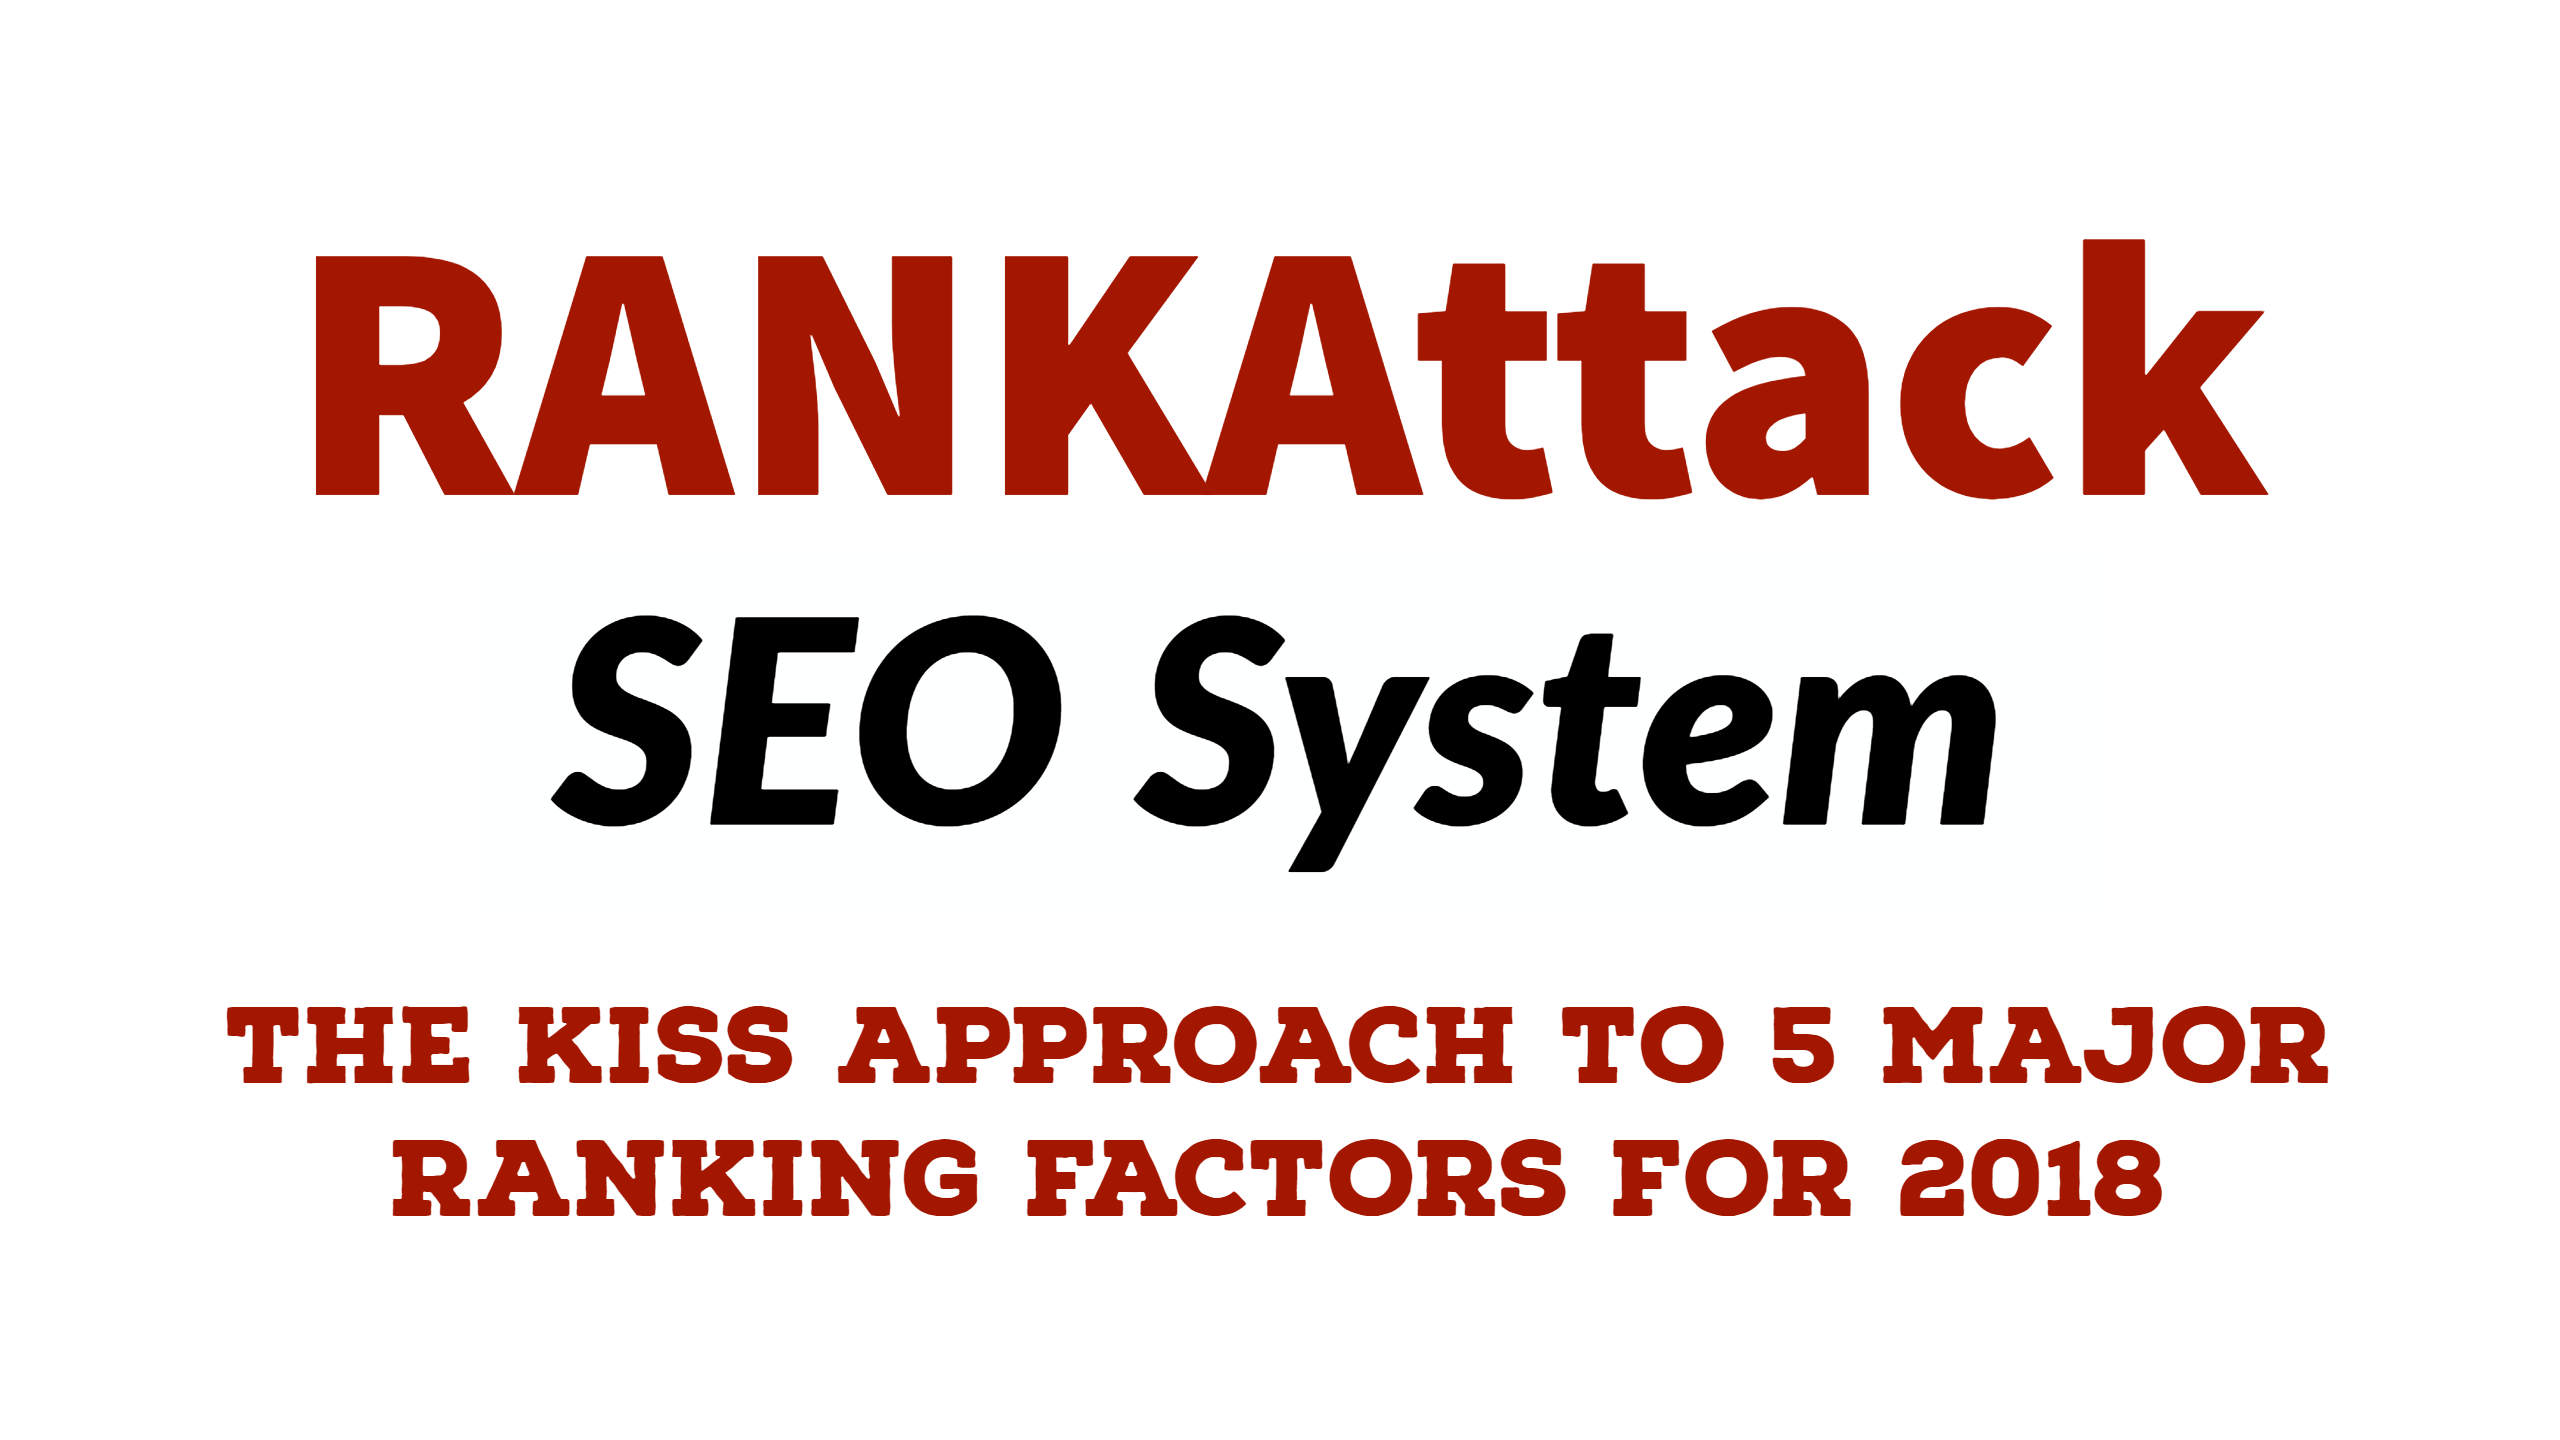 RANKAttack SEO – 5 Major Ranking Factors For 2018 Made Simple